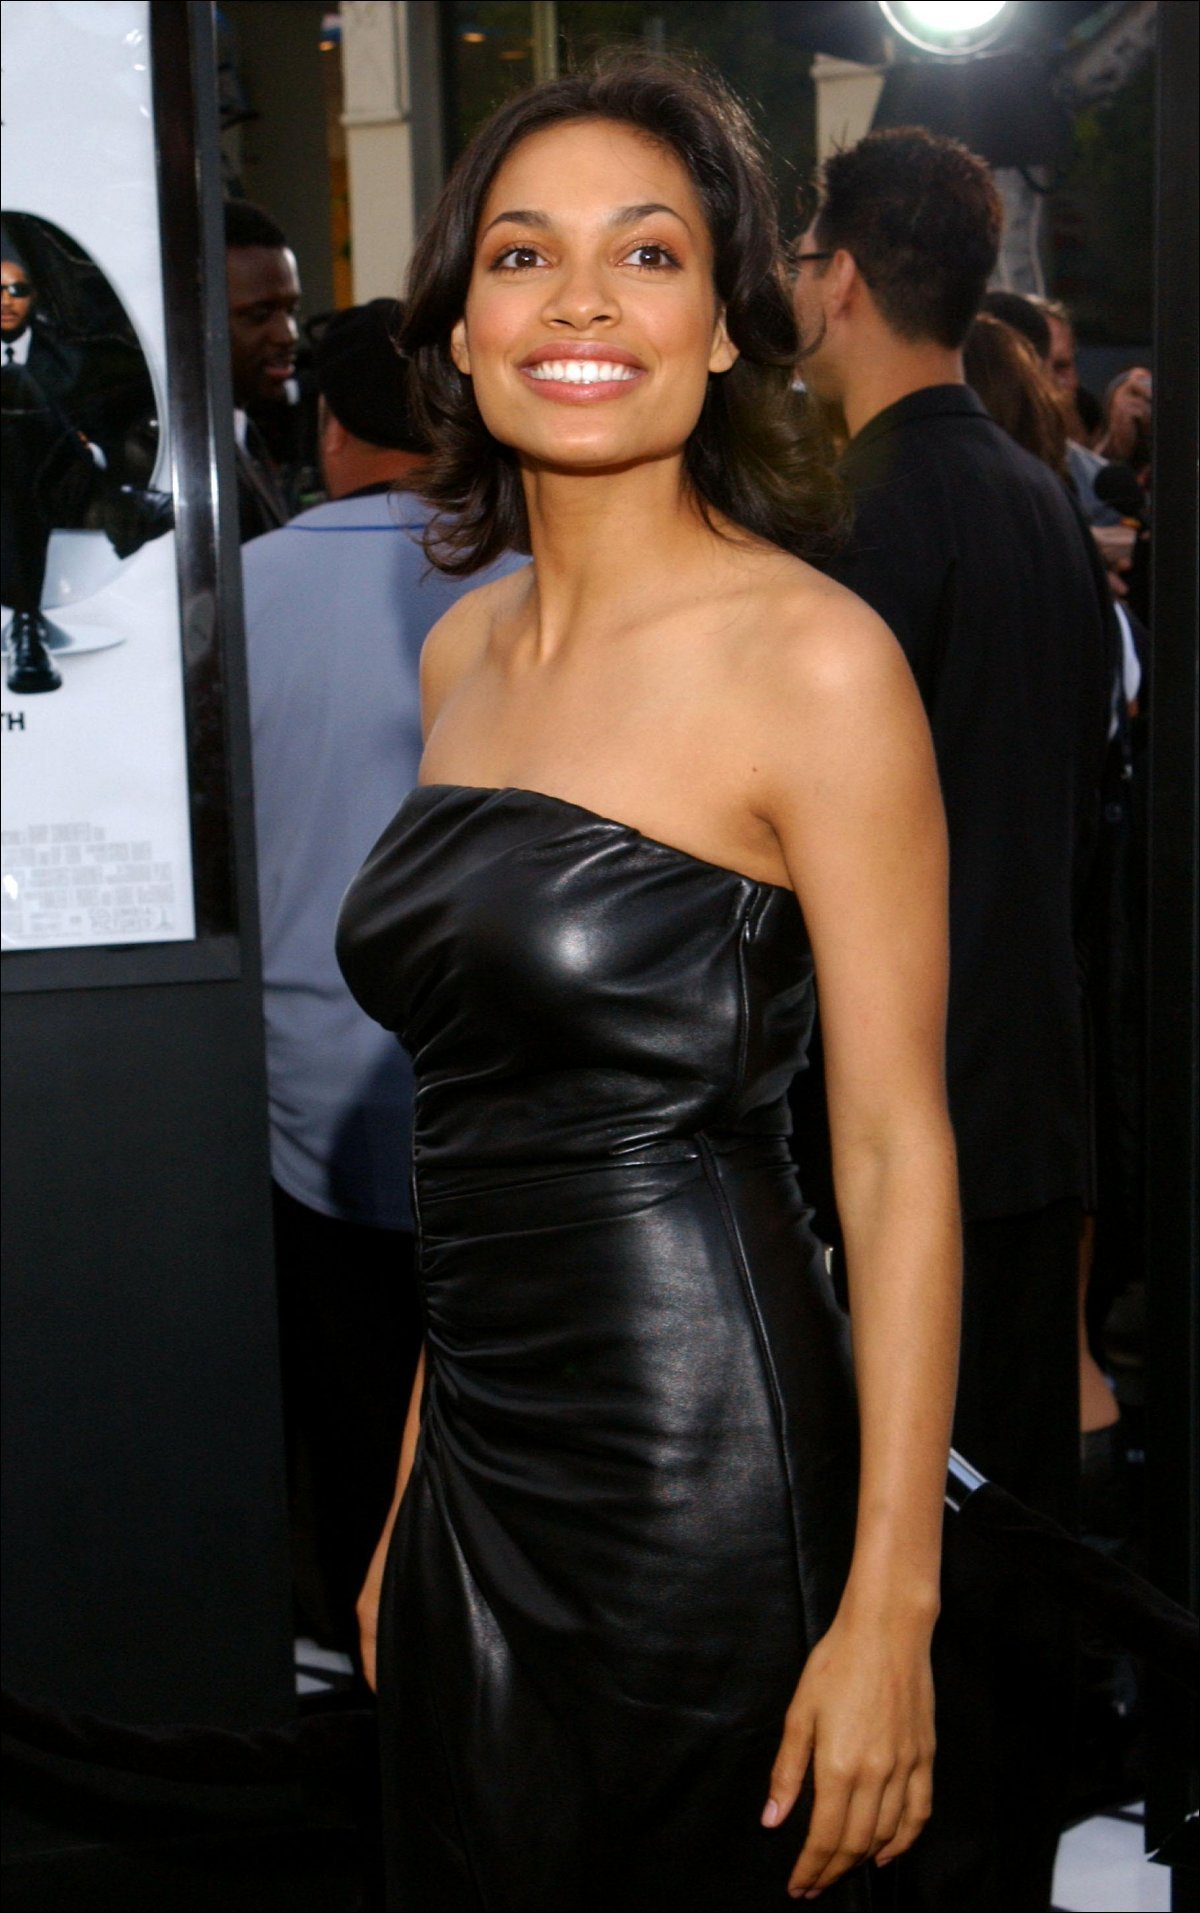 dawson black single men Most afro-latinas in hollywood are pigeonholed into playing black roles or  she  was equally terrific as the african american shelby in the best man (1999)  he  followed that up with another hit single—the latin pop song  rosario dawson  has a body of work in films that most actresses would envy.